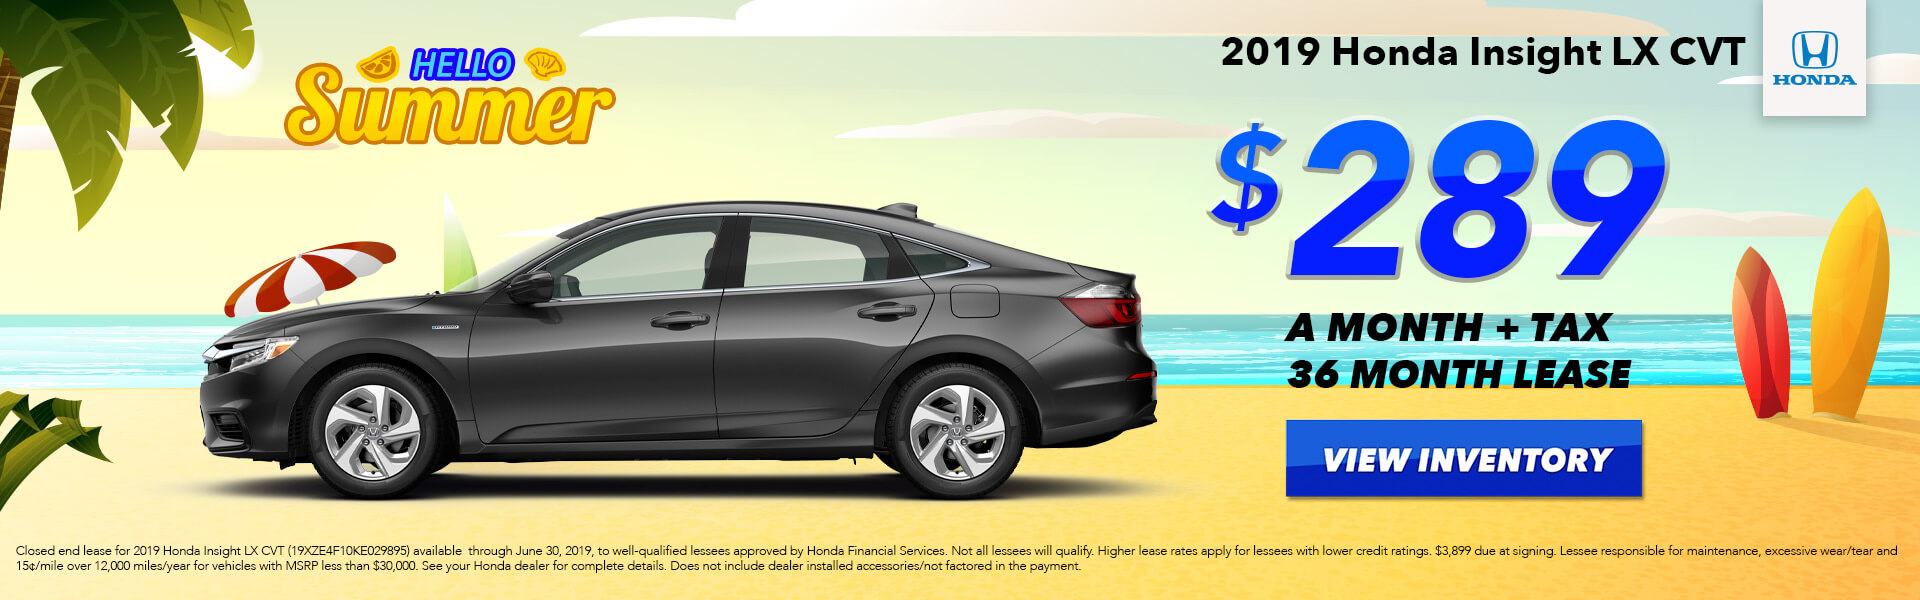 2019 Honda Insight Lease for $289